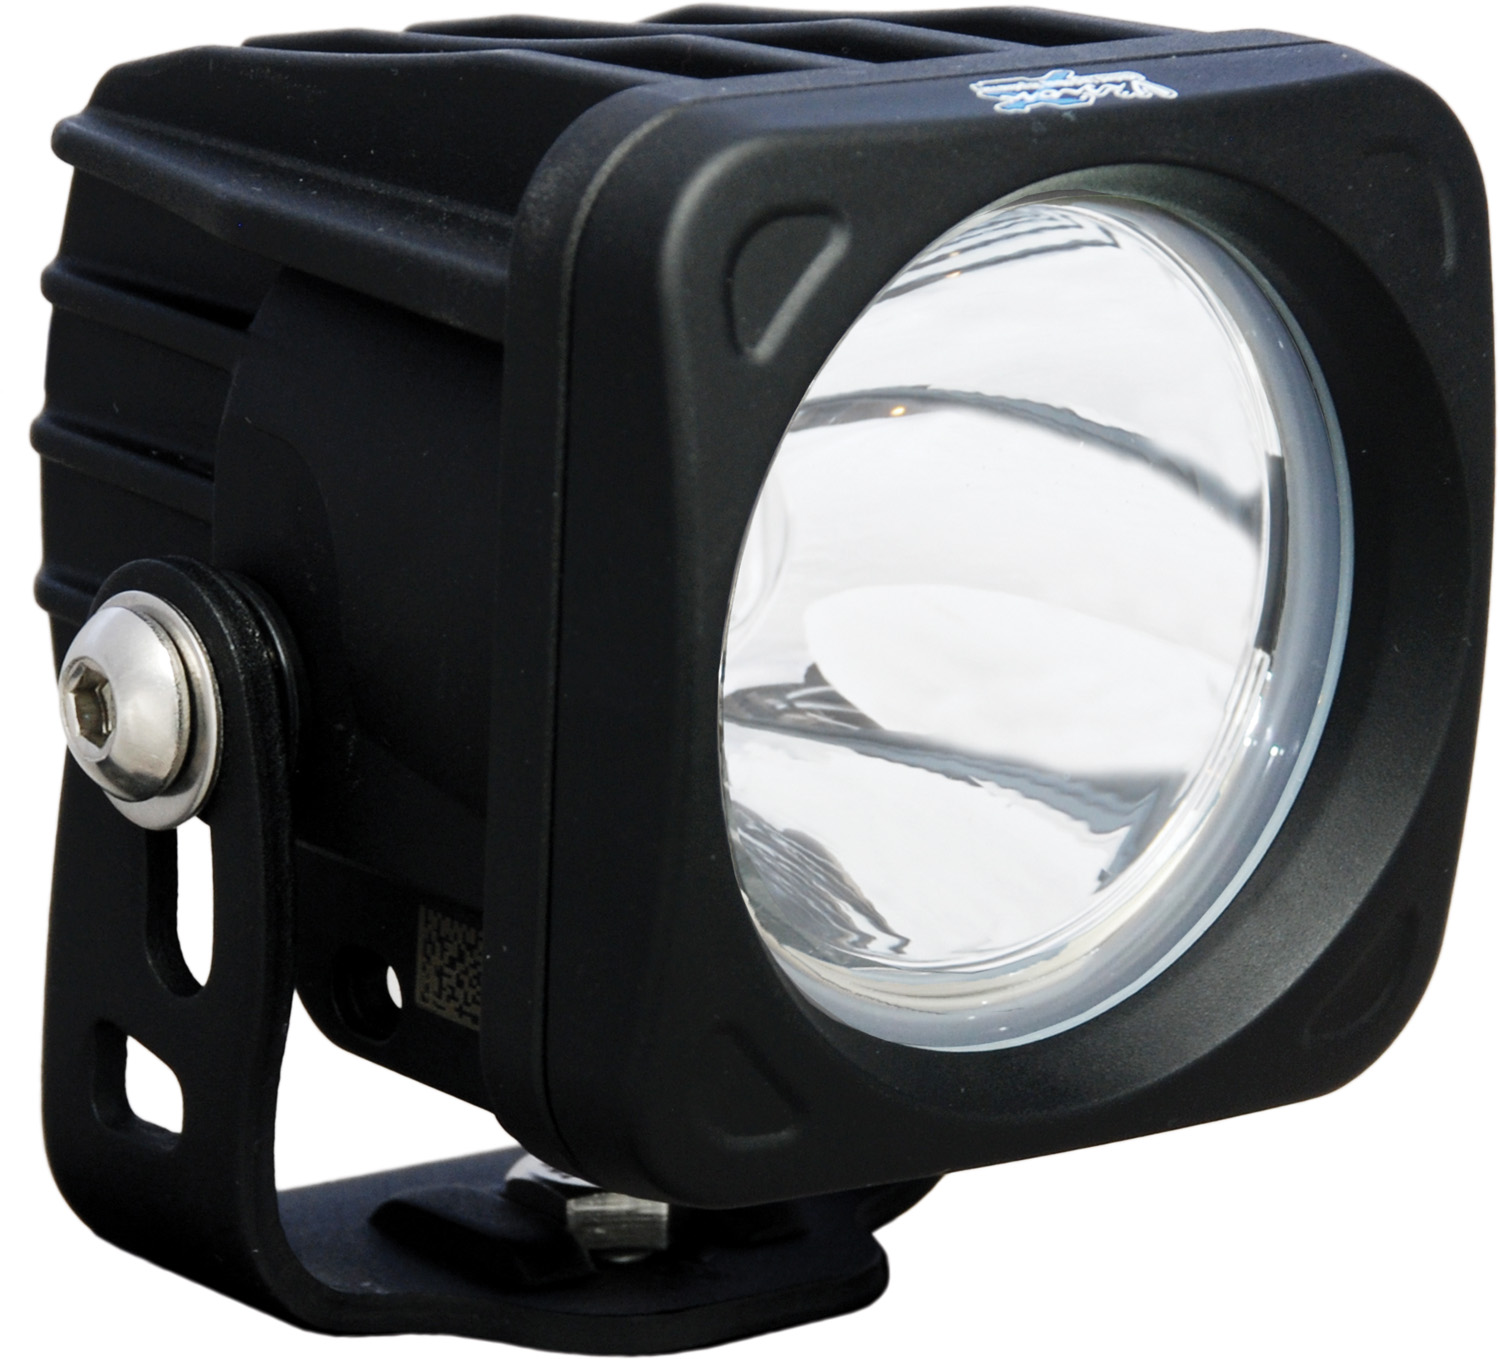 OPTIMUS SQUARE BLACK 1 10W LED 10° NARROW